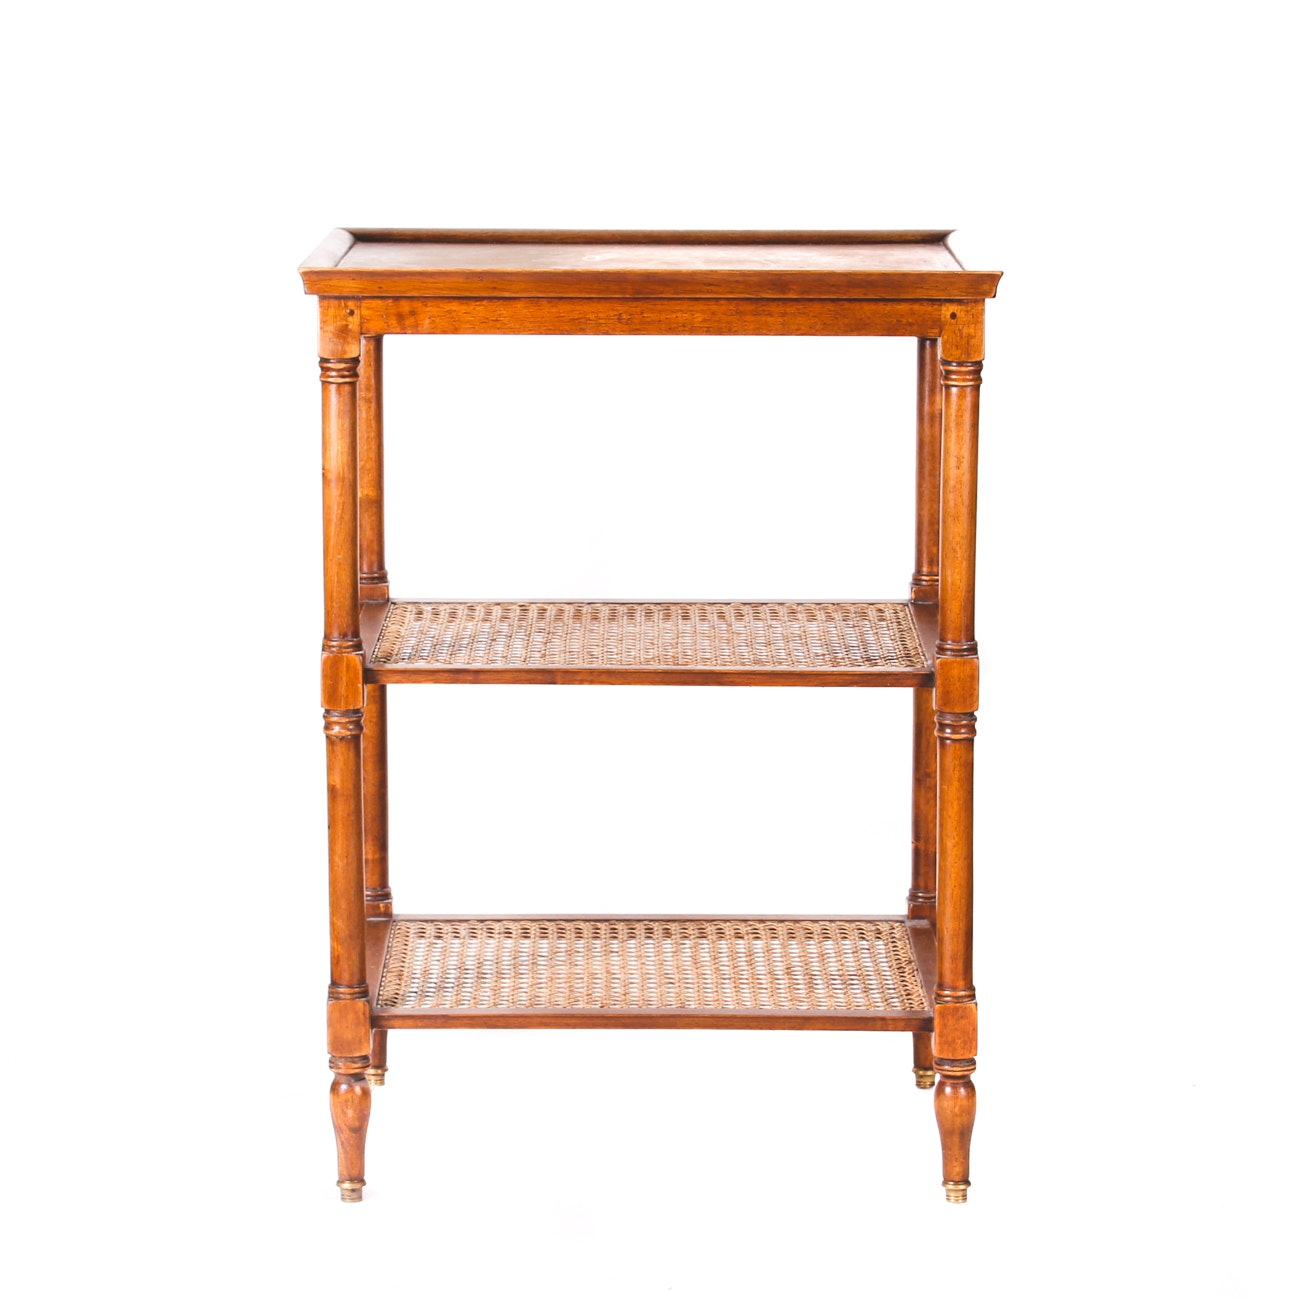 Split Cane and Wood Tiered Shelf